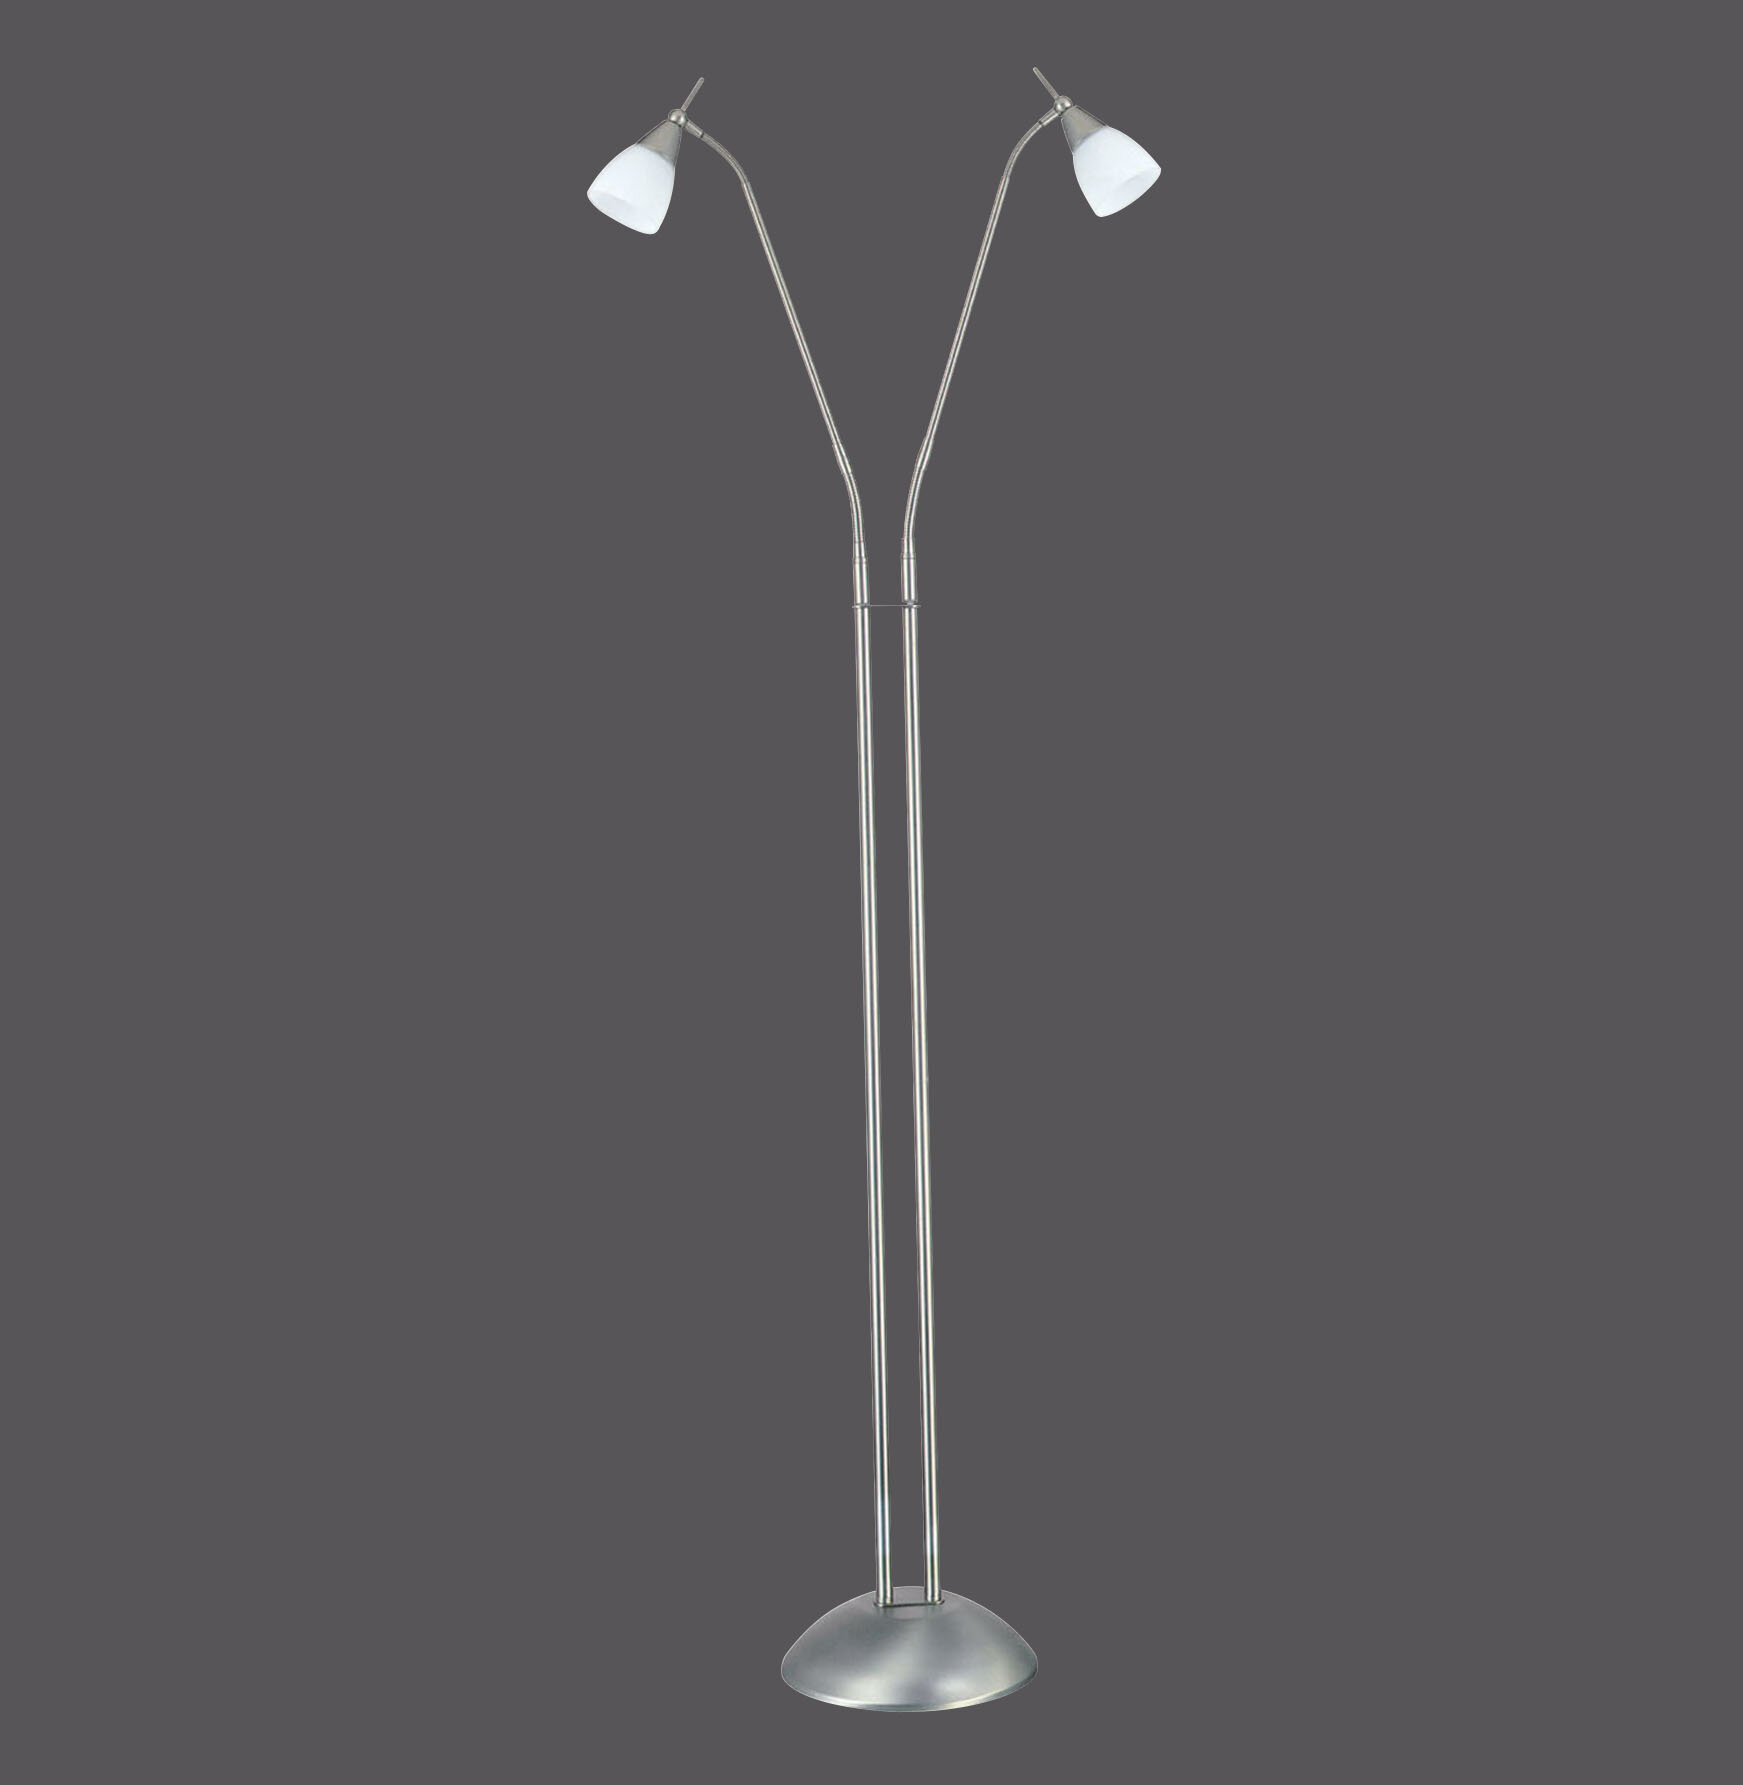 17 Stories 167 Cm Stehlampe Speece Bewertungen Wayfair De